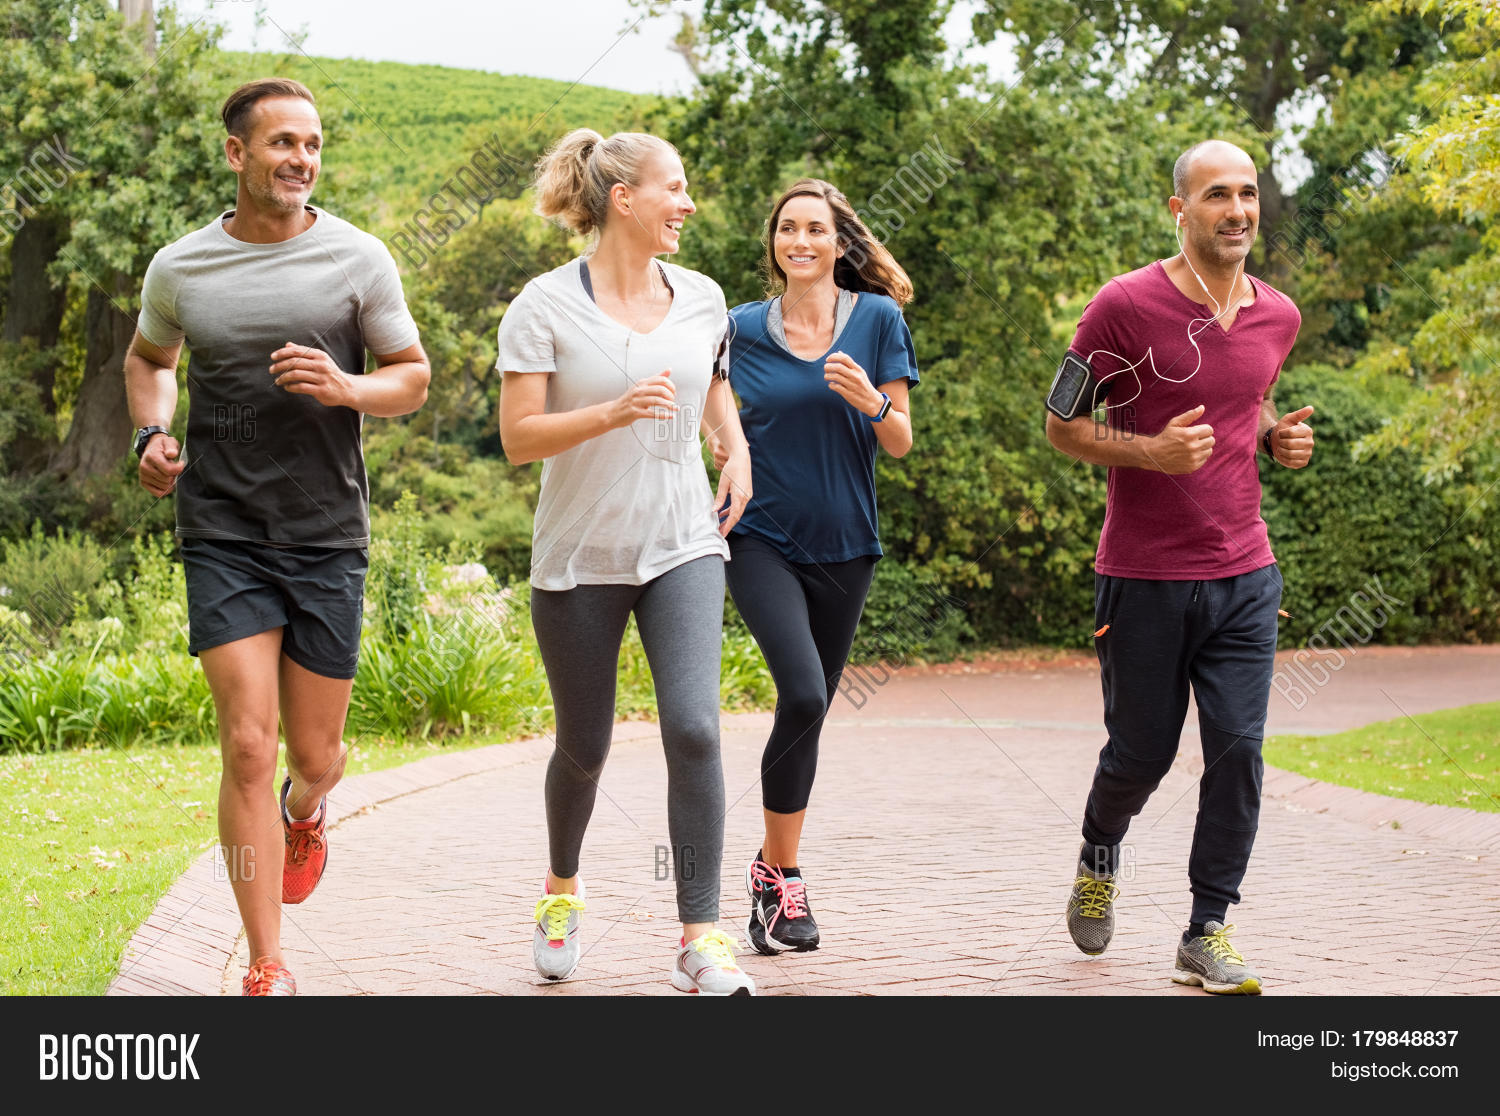 Jogging Run Time Healthy Group People Image Photo Free Trial Bigstock